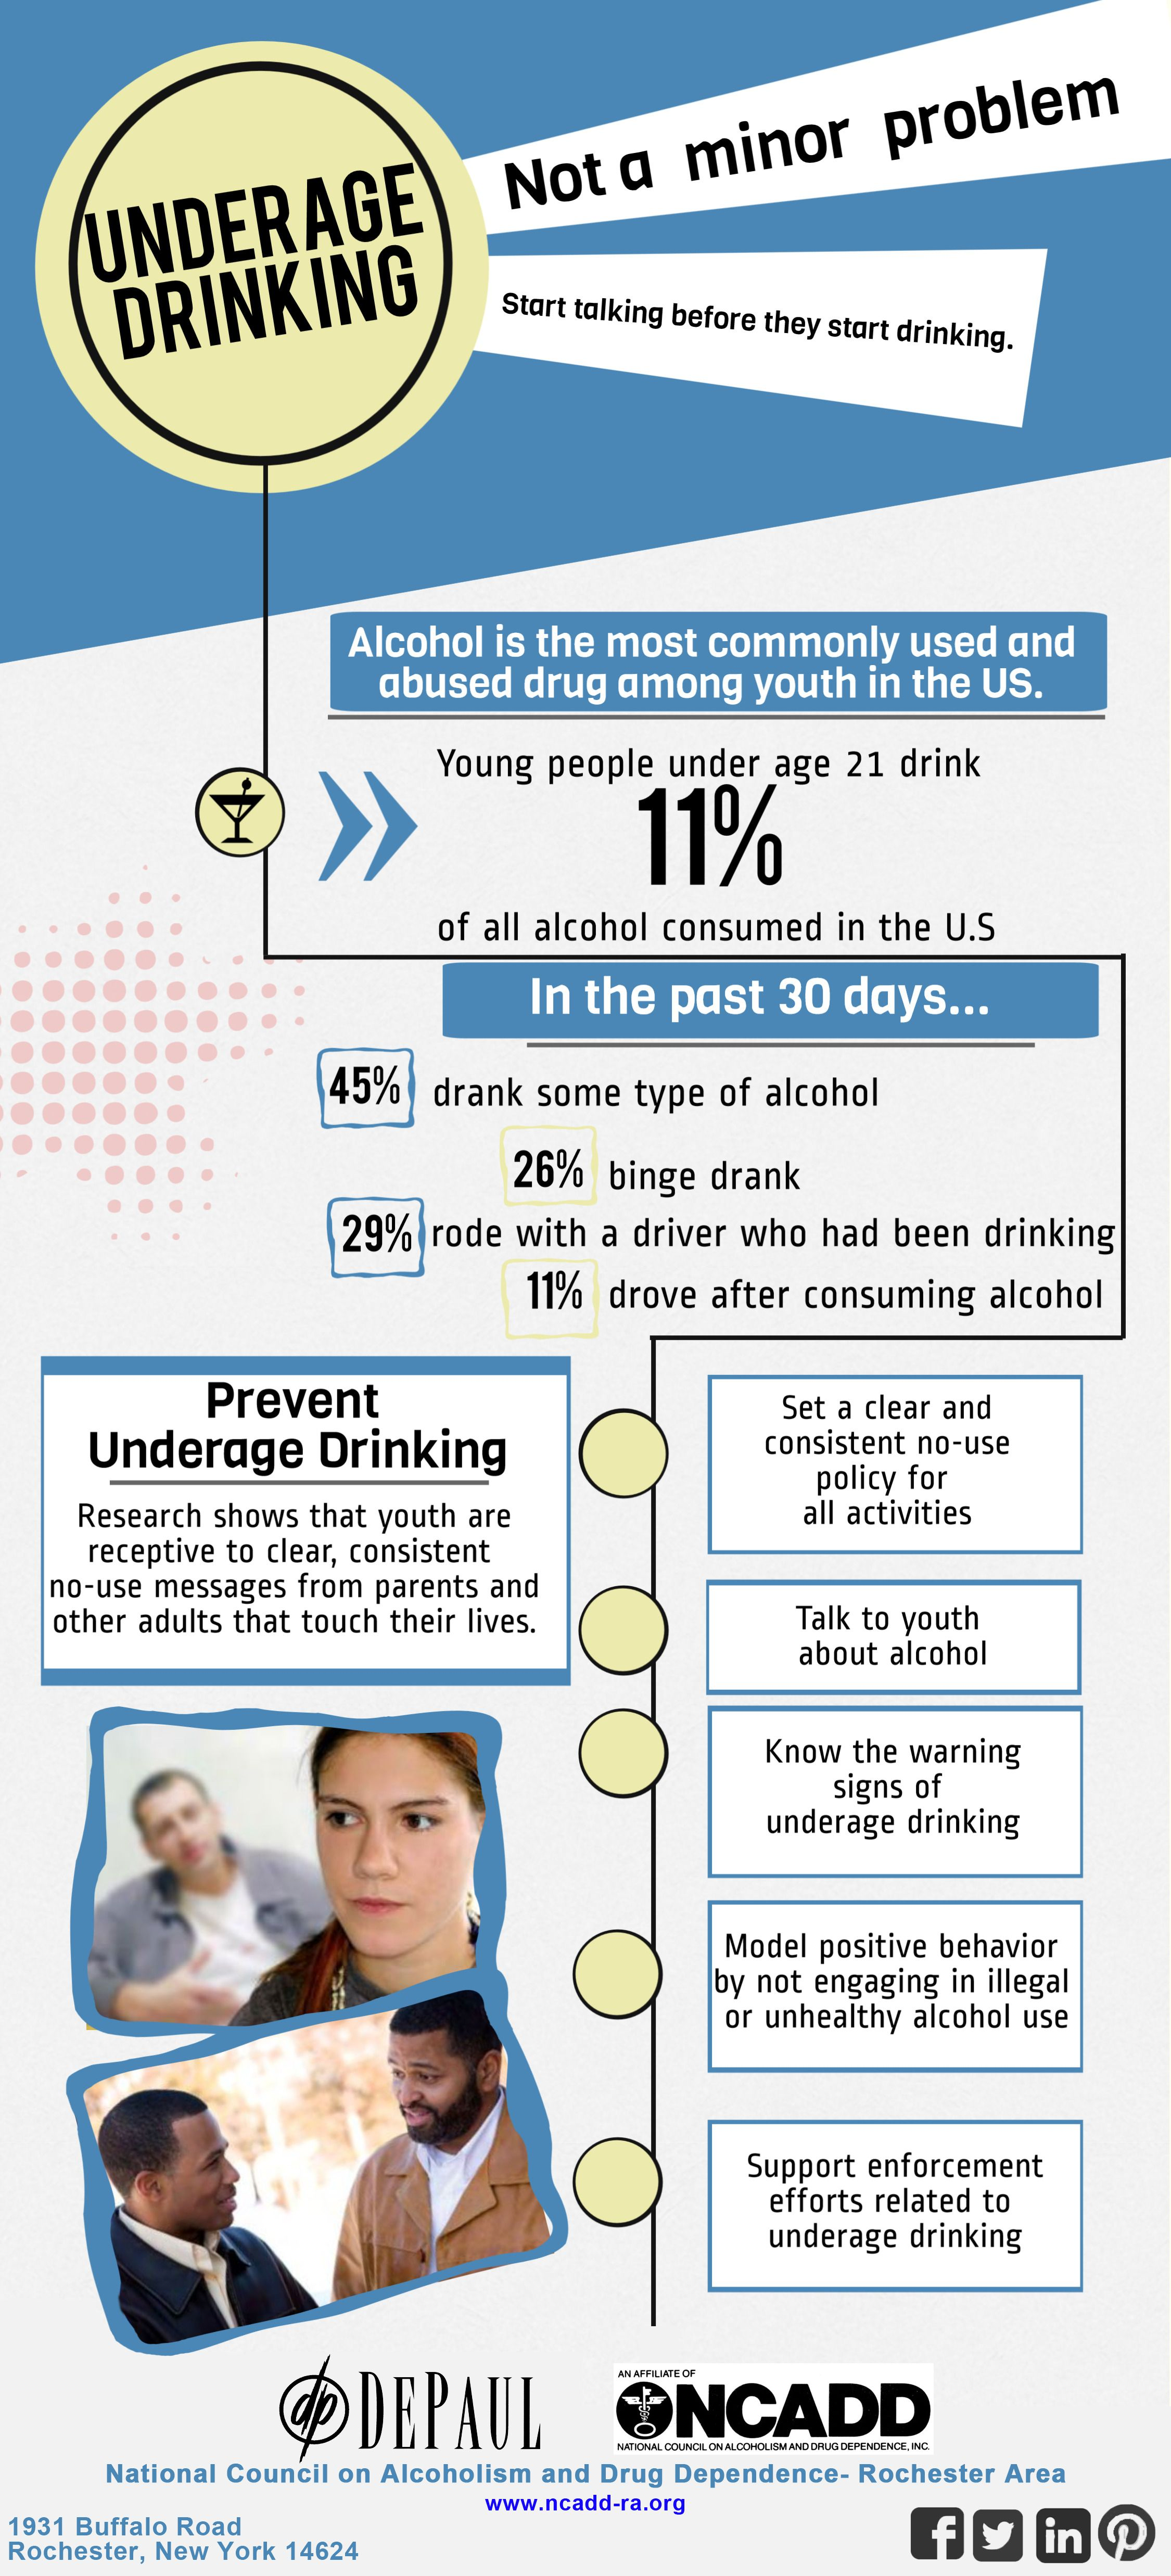 Health Essay Example Infographic Underage Drinkingnot A Minor Problem Start Talking Before  They Start Drinking Ncadd Underagedrinking Should Condoms Be Available In High School Essay also Sample Essay For High School Students Infographic Underage Drinkingnot A Minor Problem Start Talking  How To Write An Essay Proposal